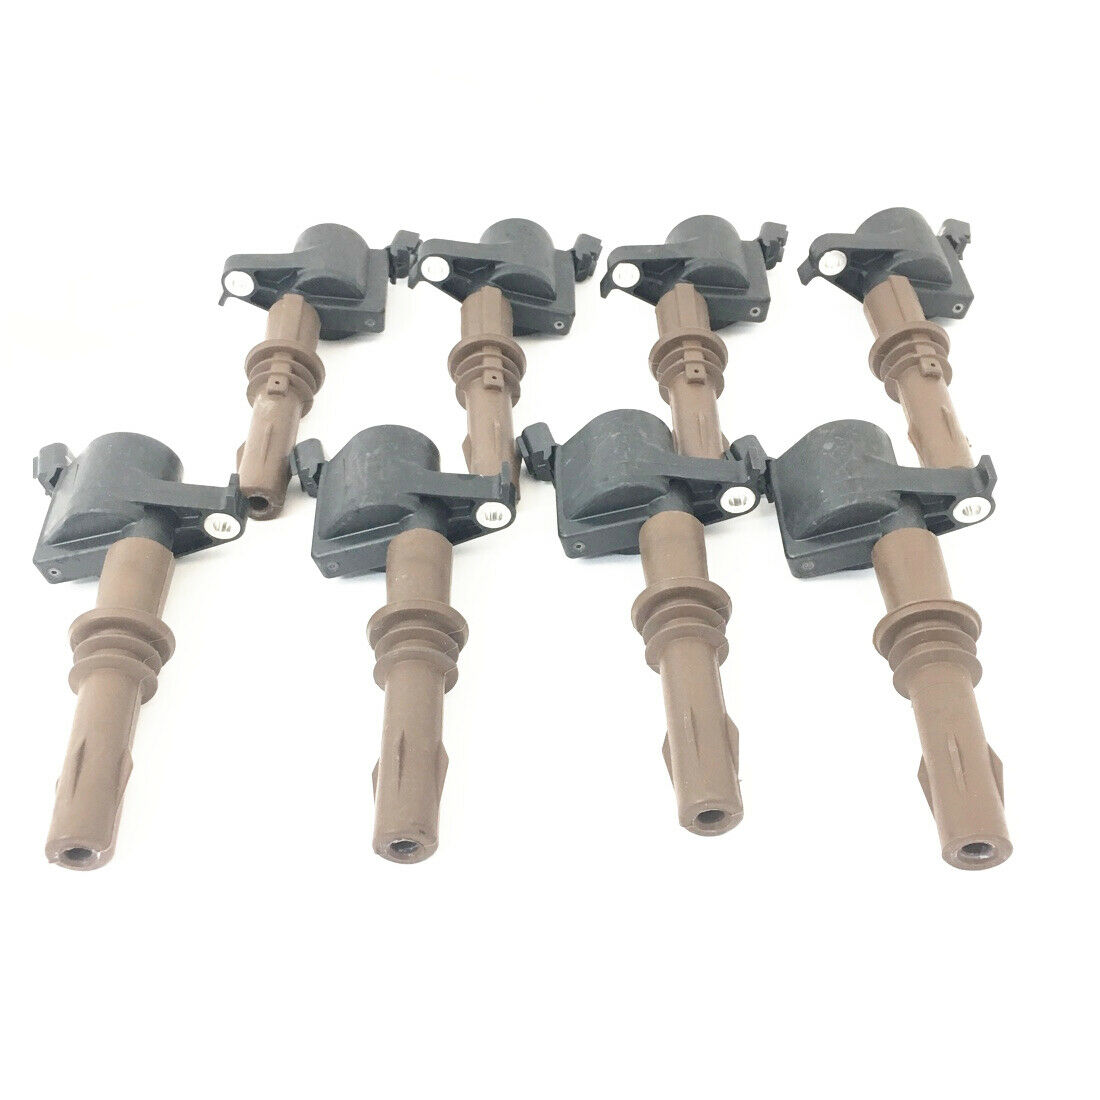 Genuine Ford Ignition Coils 4.6L 5.4L 3V Brown Boot Set of 8